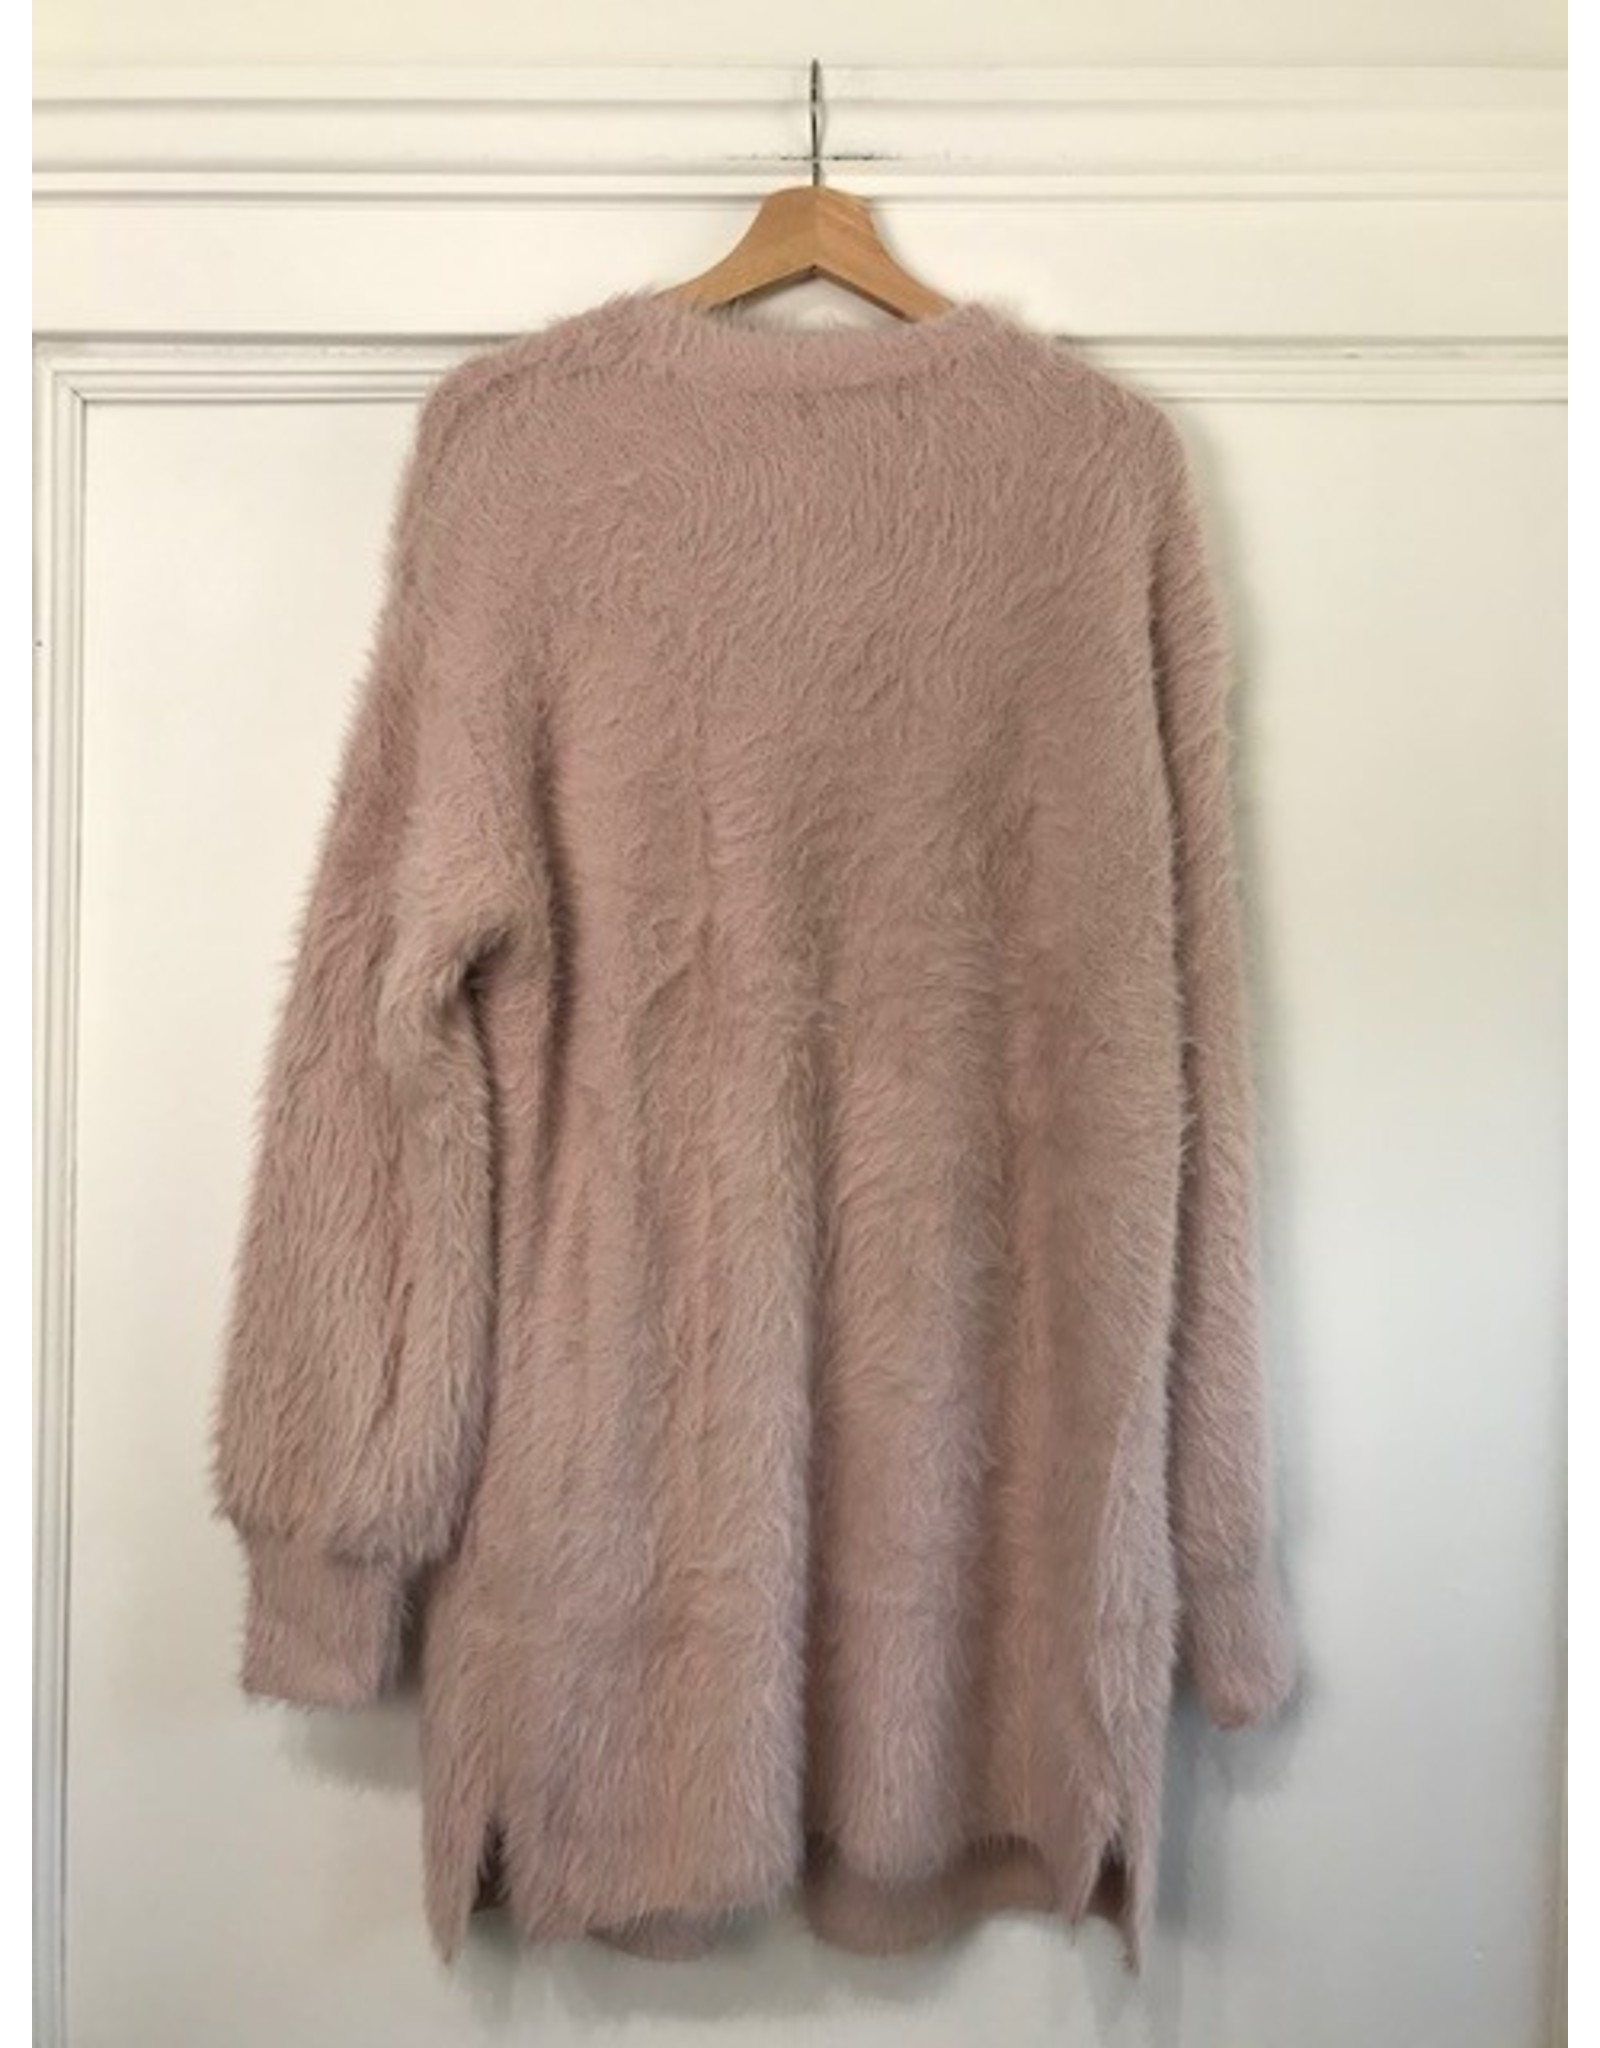 Papillon Papillon - Fuzzy maxi cardigan with pockets (blush)